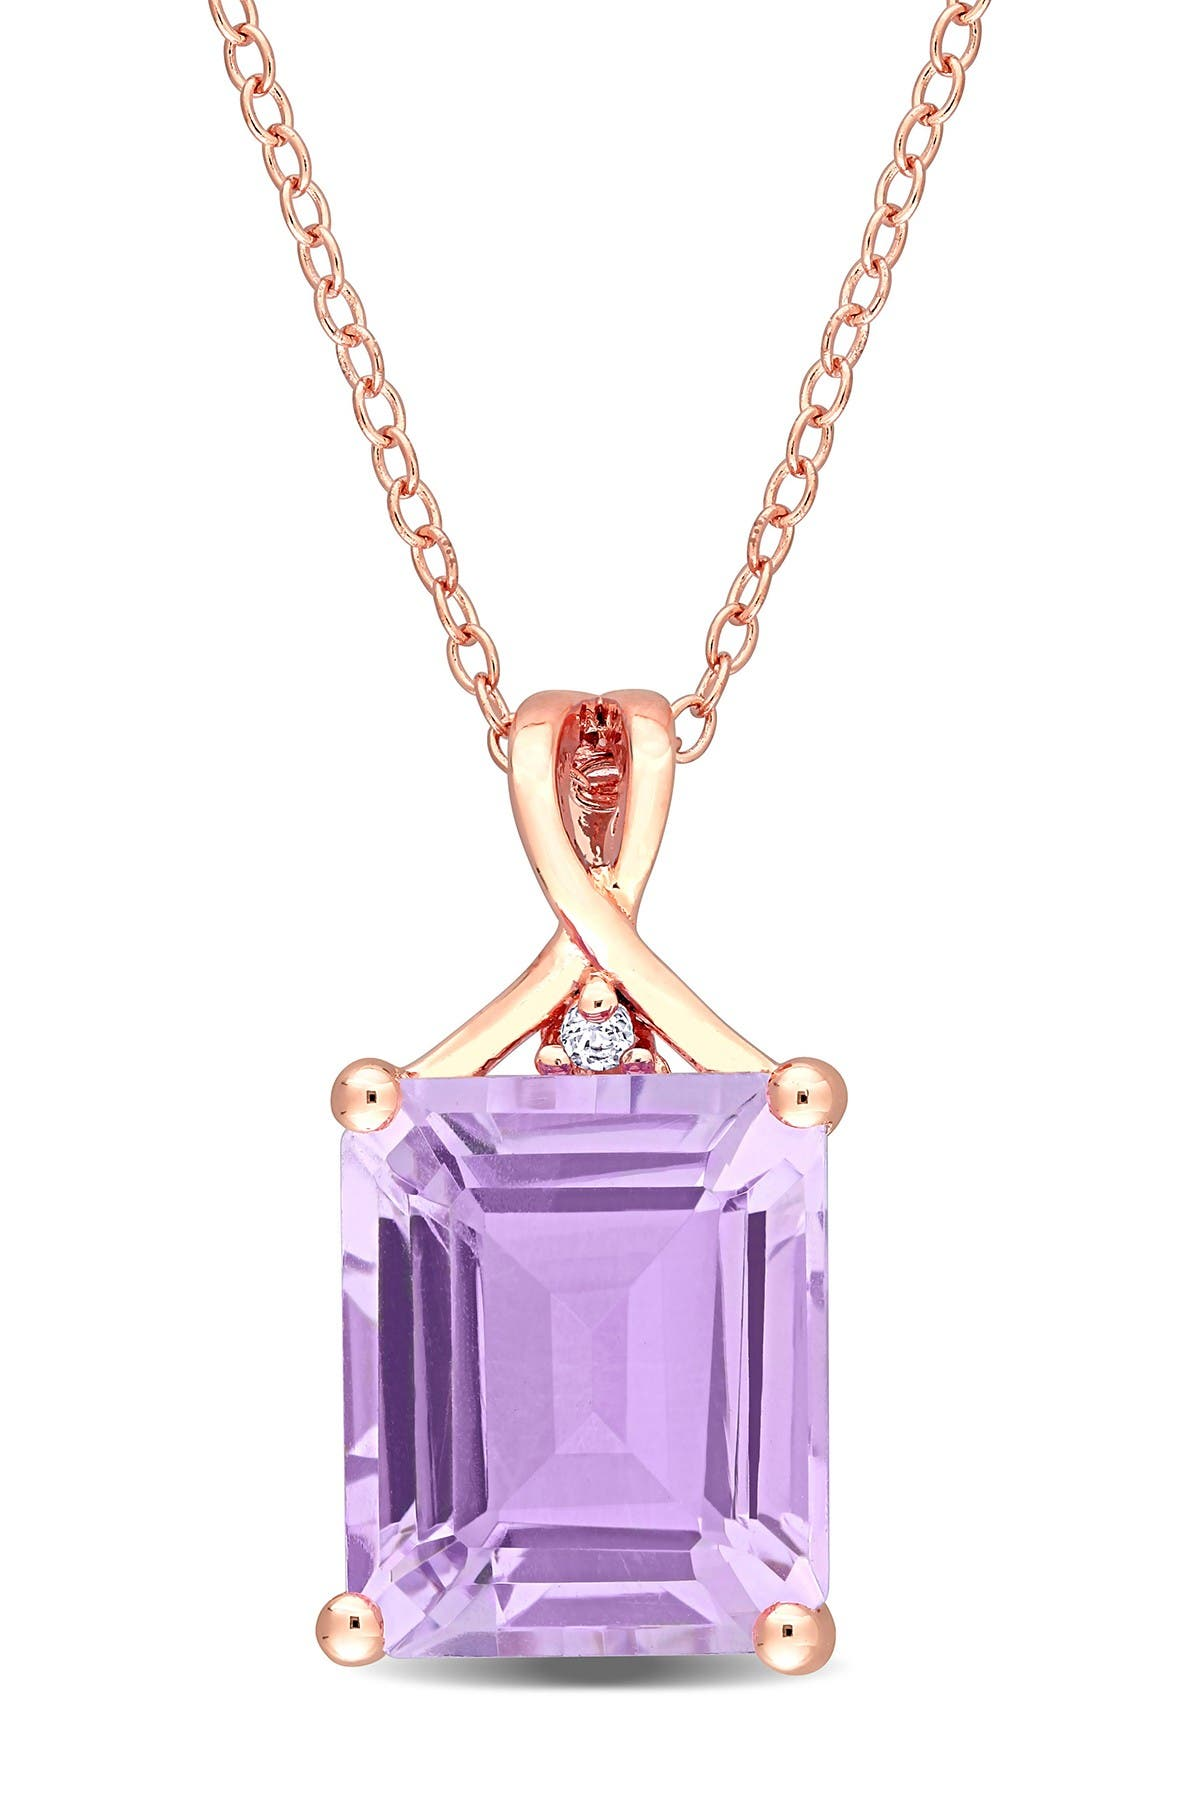 Image of Delmar Rose Plated Sterling Silver Baguette Cut Amethyst Pendant Necklace